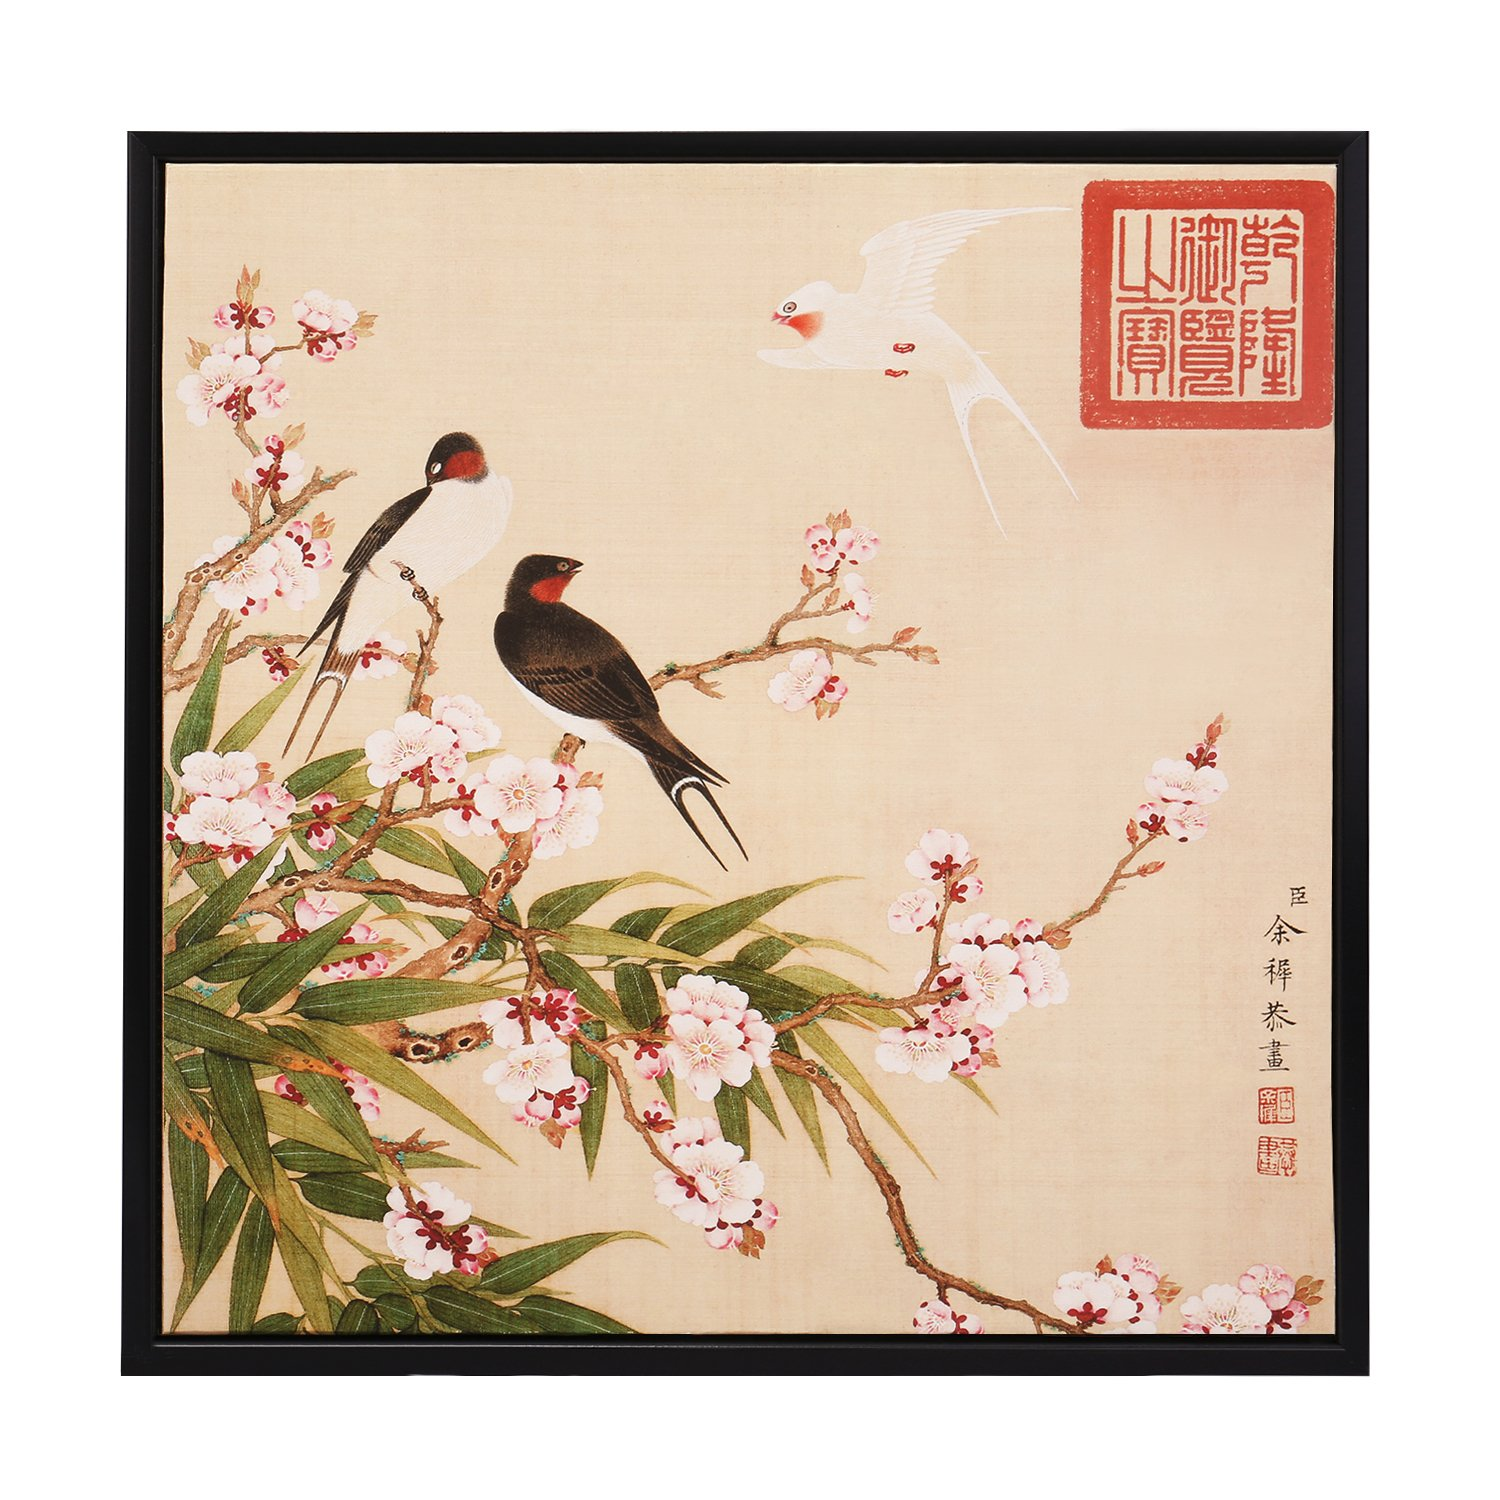 INK WASH Framed Fine Art Reproduction Ancient Chinese Painting Asian Decor  Wall Art Red Plum Blossom Birds and Flower Paintings Antique Art for Wall